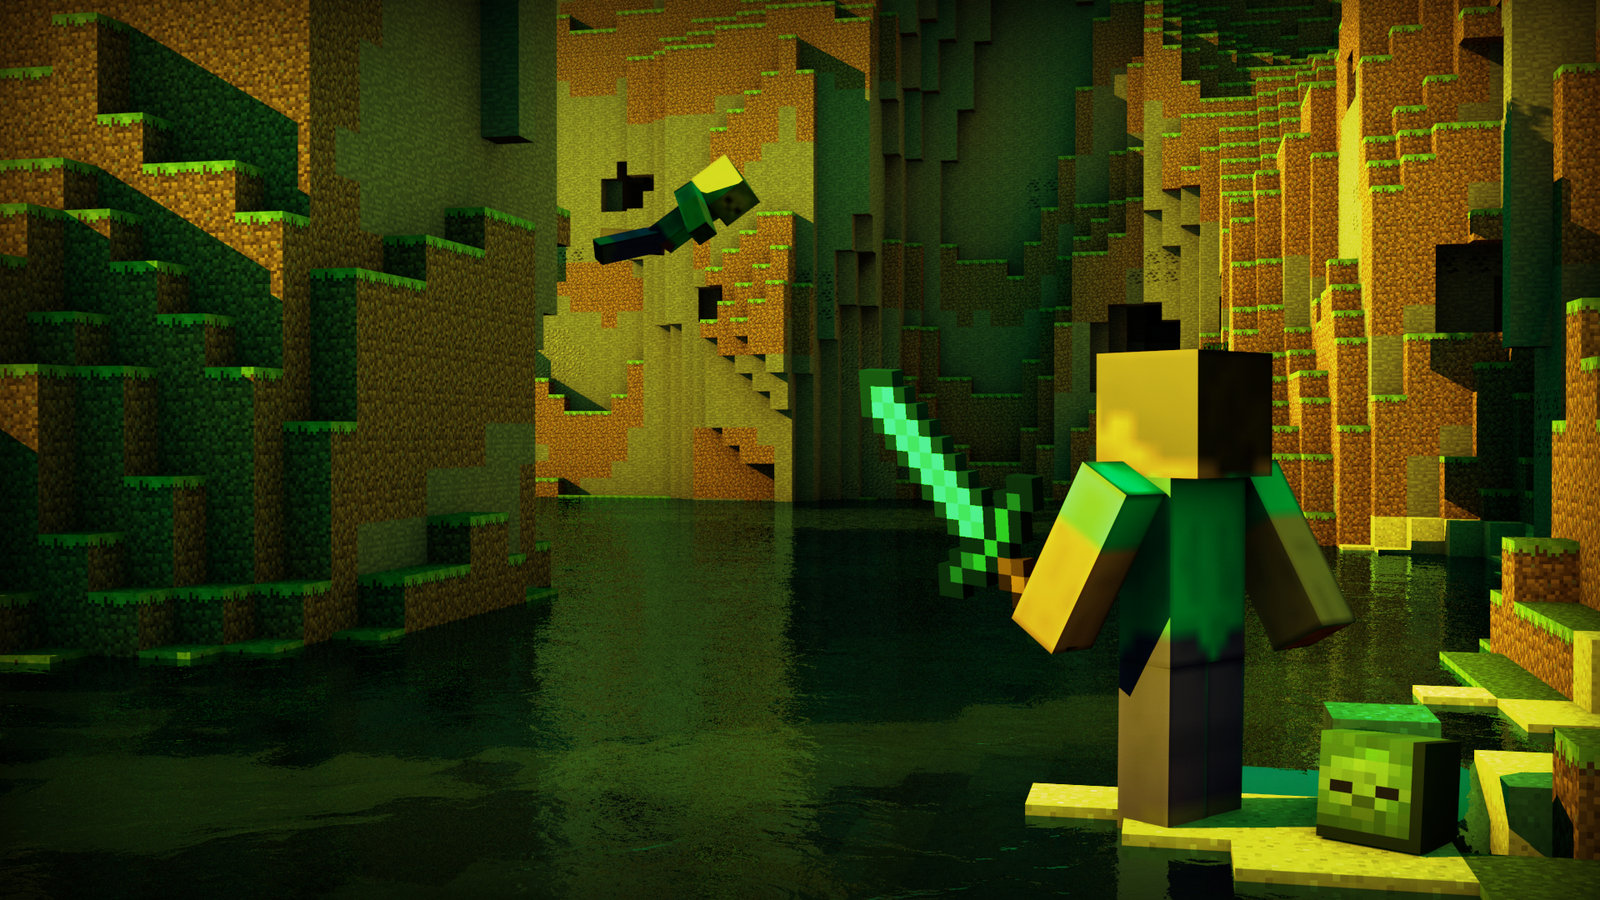 Cool Minecraft Ps3 Wallpapers Top Game Trick 1600x900